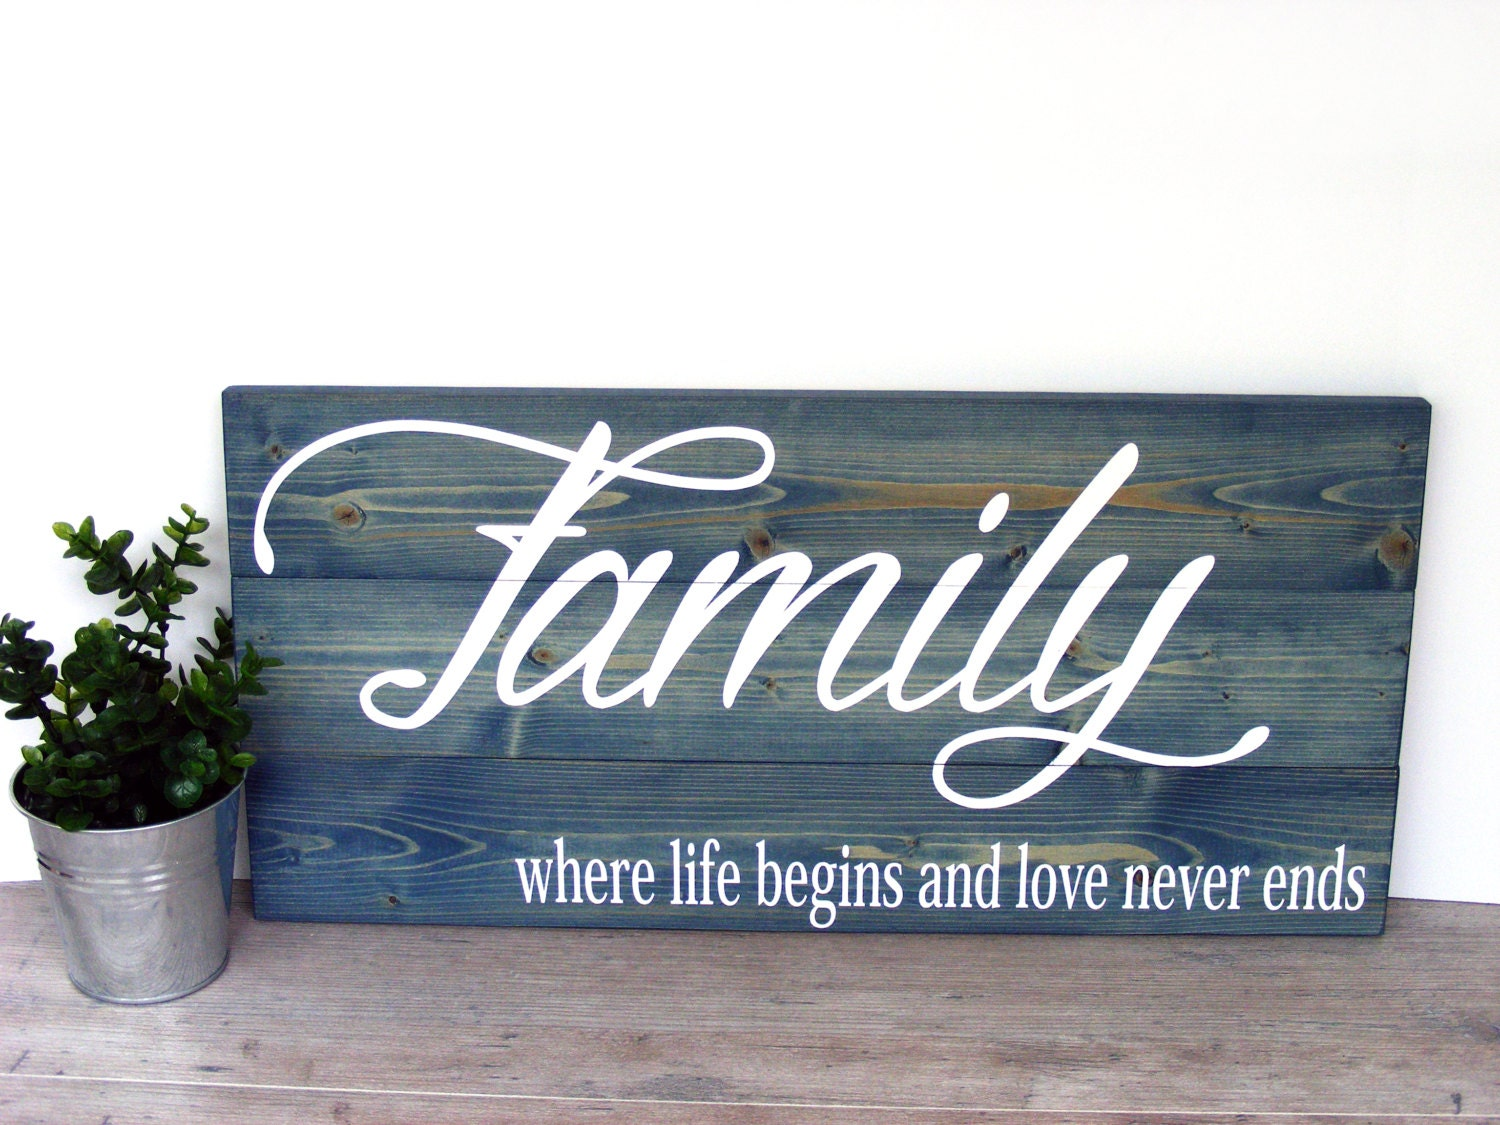 Family Wood Sign Home Decor 28 Images Country Home Home Decorators Catalog Best Ideas of Home Decor and Design [homedecoratorscatalog.us]